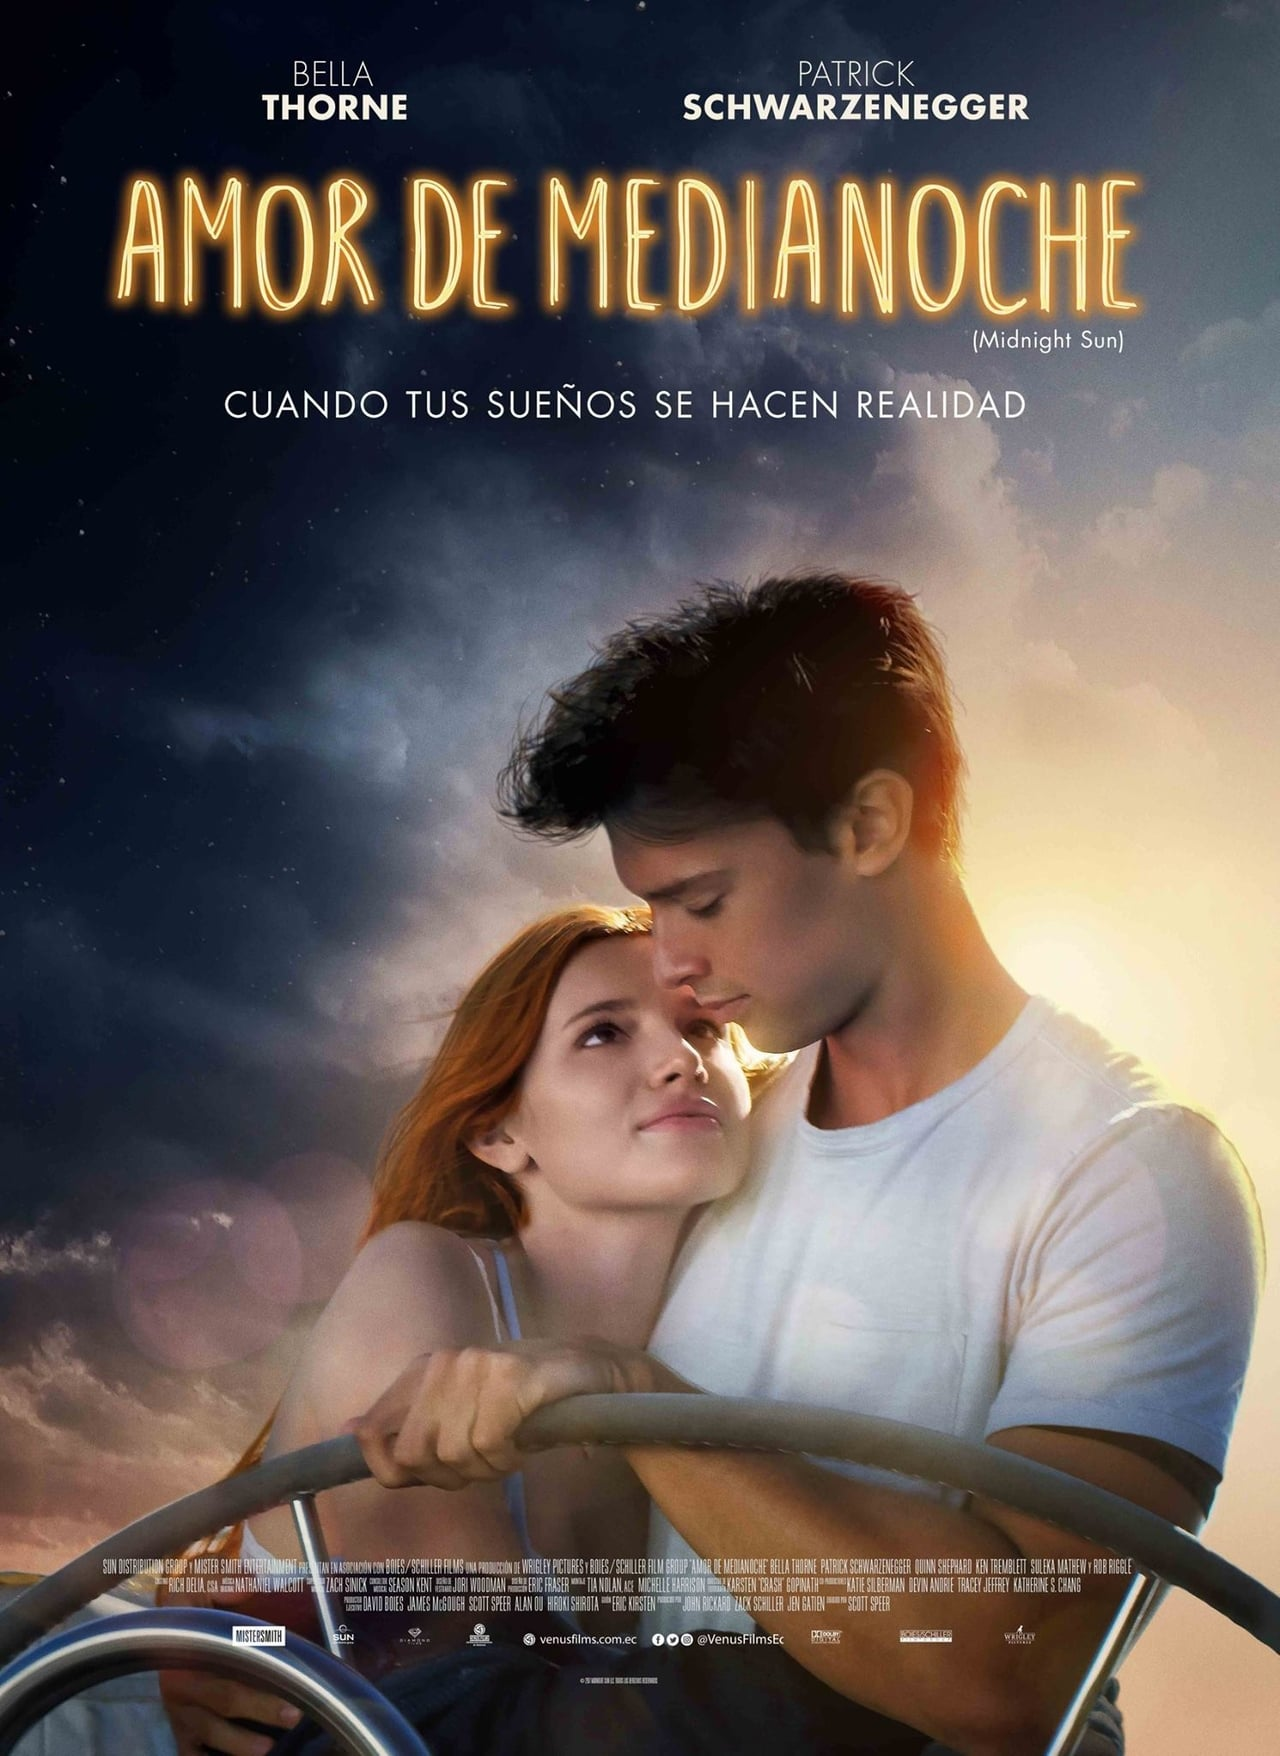 Watch Midnight Sun (2018) Full Length Movies at online